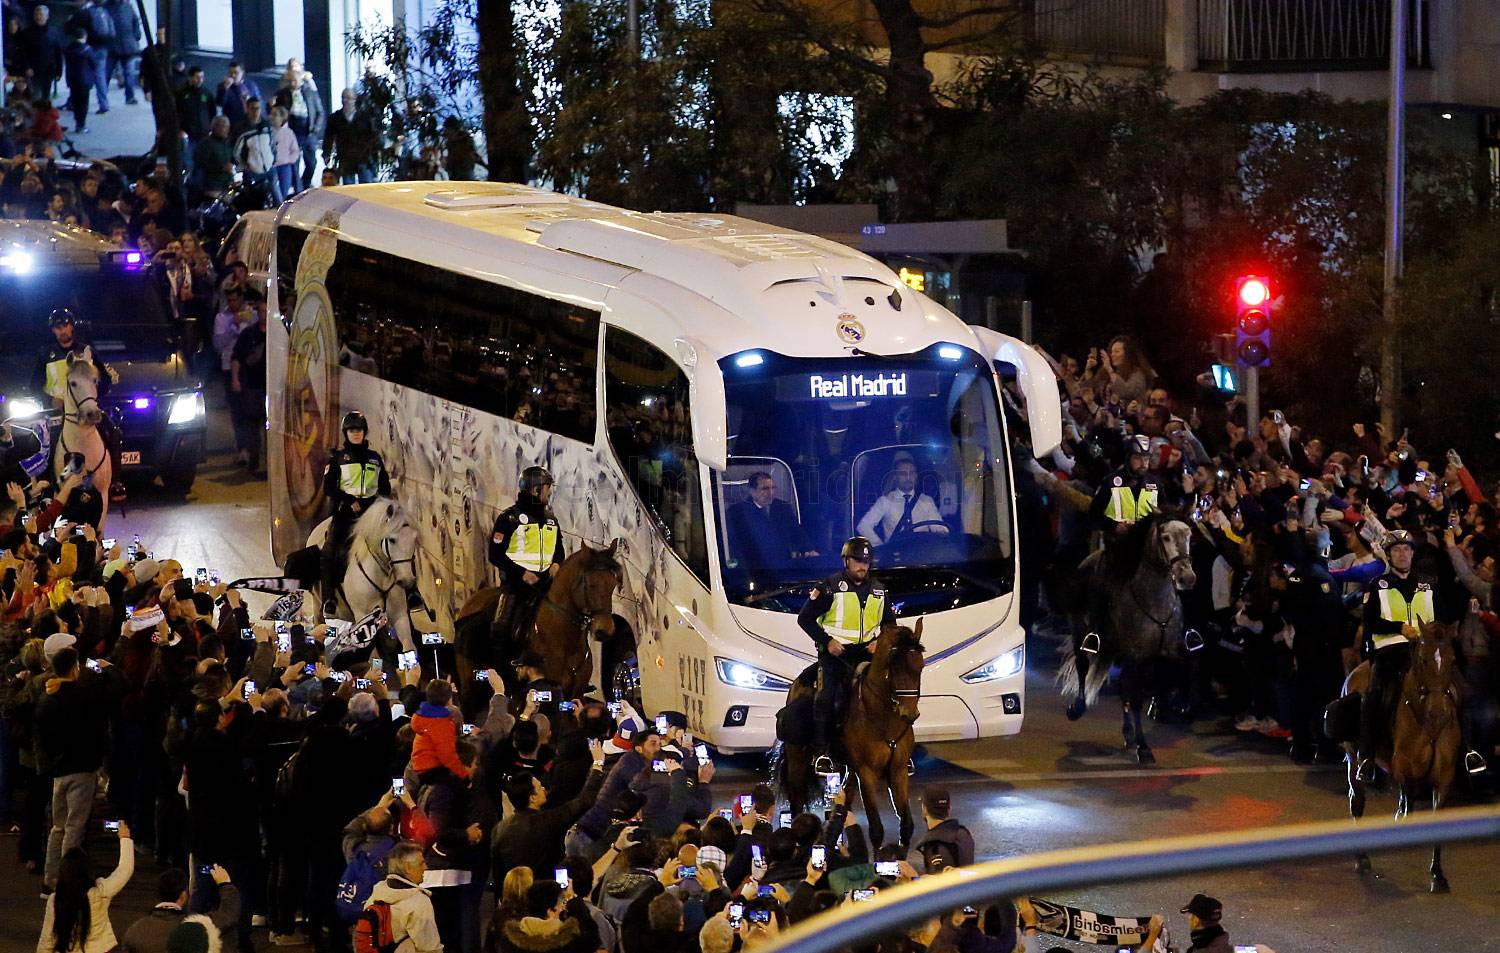 Real Madrid - Llegada del Real Madrid - 05-03-2019